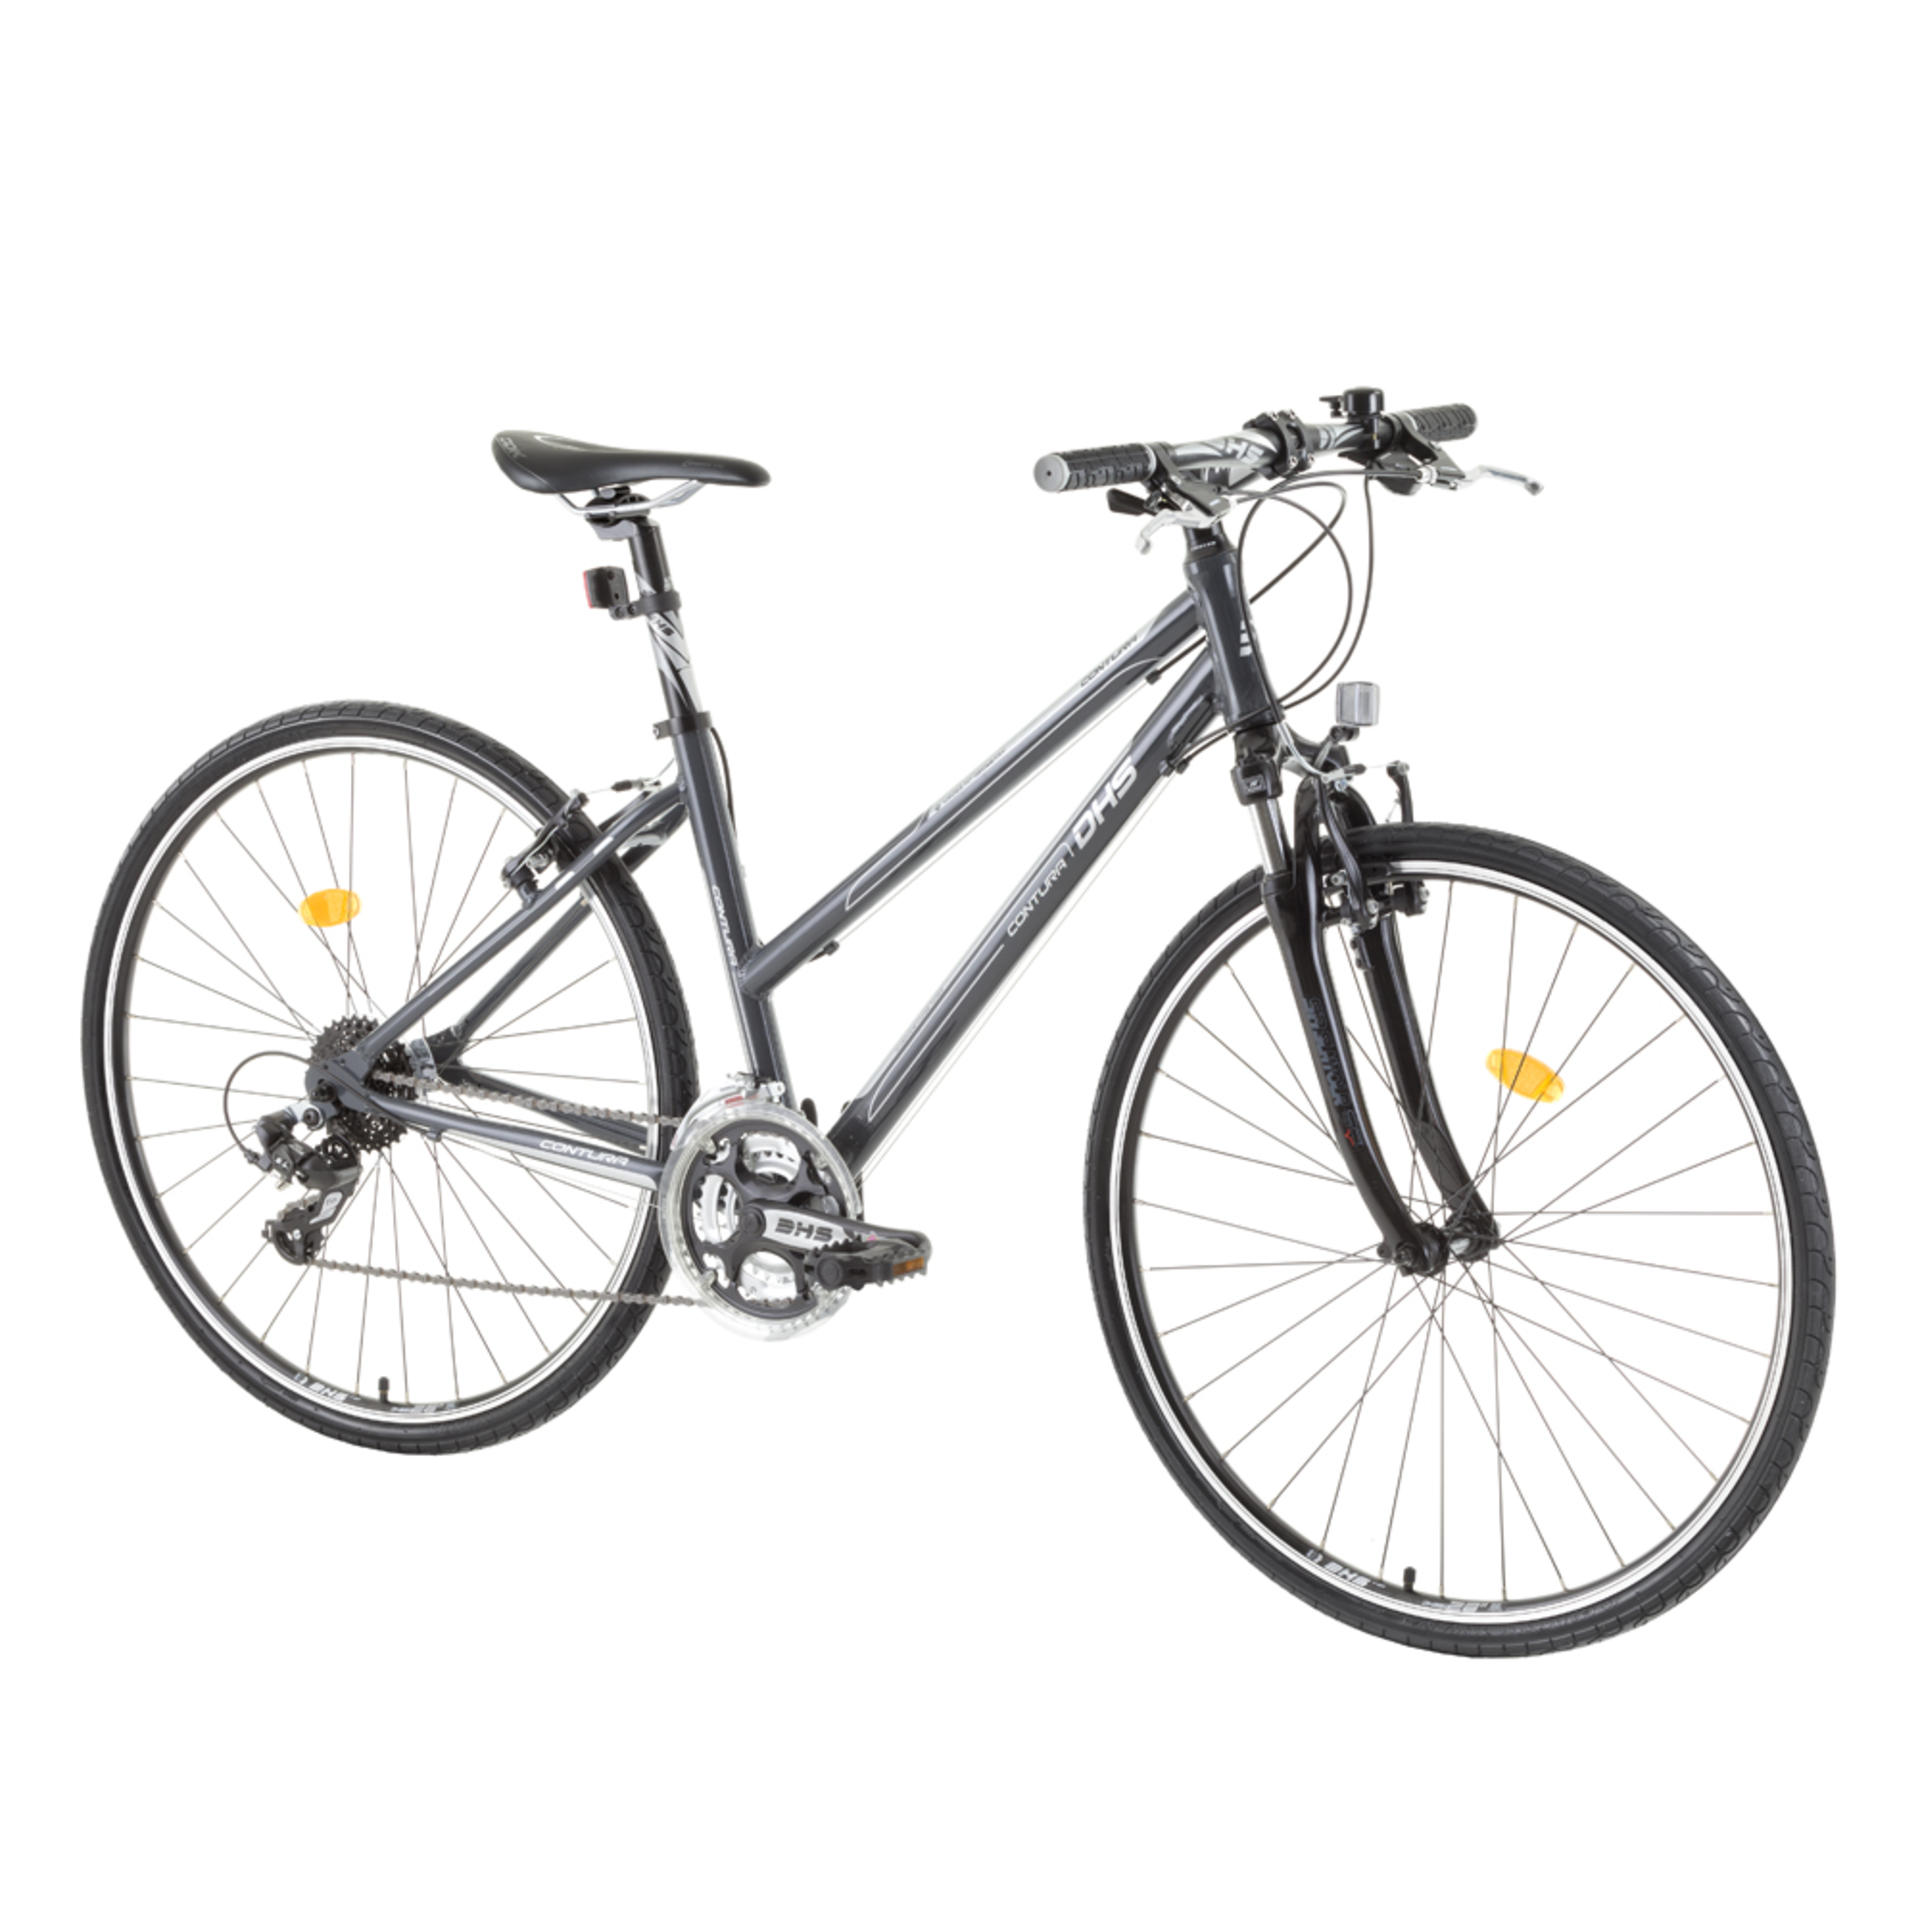 Bicicletta da cross da donna DHS 2866 Grey 495mm